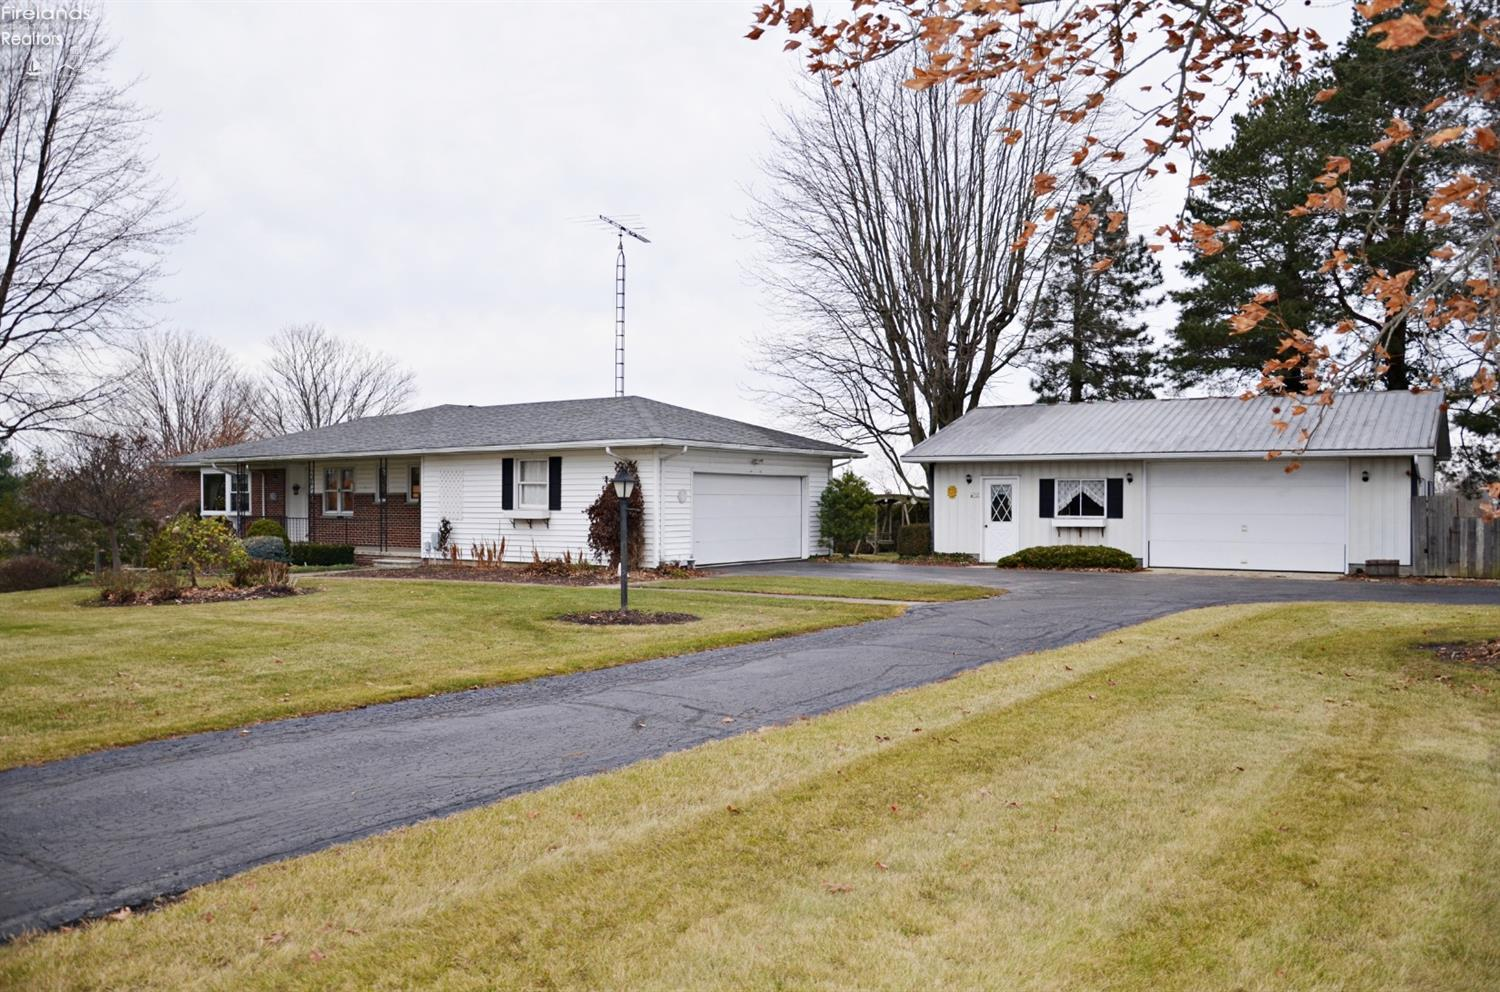 4117 W TOWNSHIP RD 98, TIFFIN, OH 44883  Photo 2